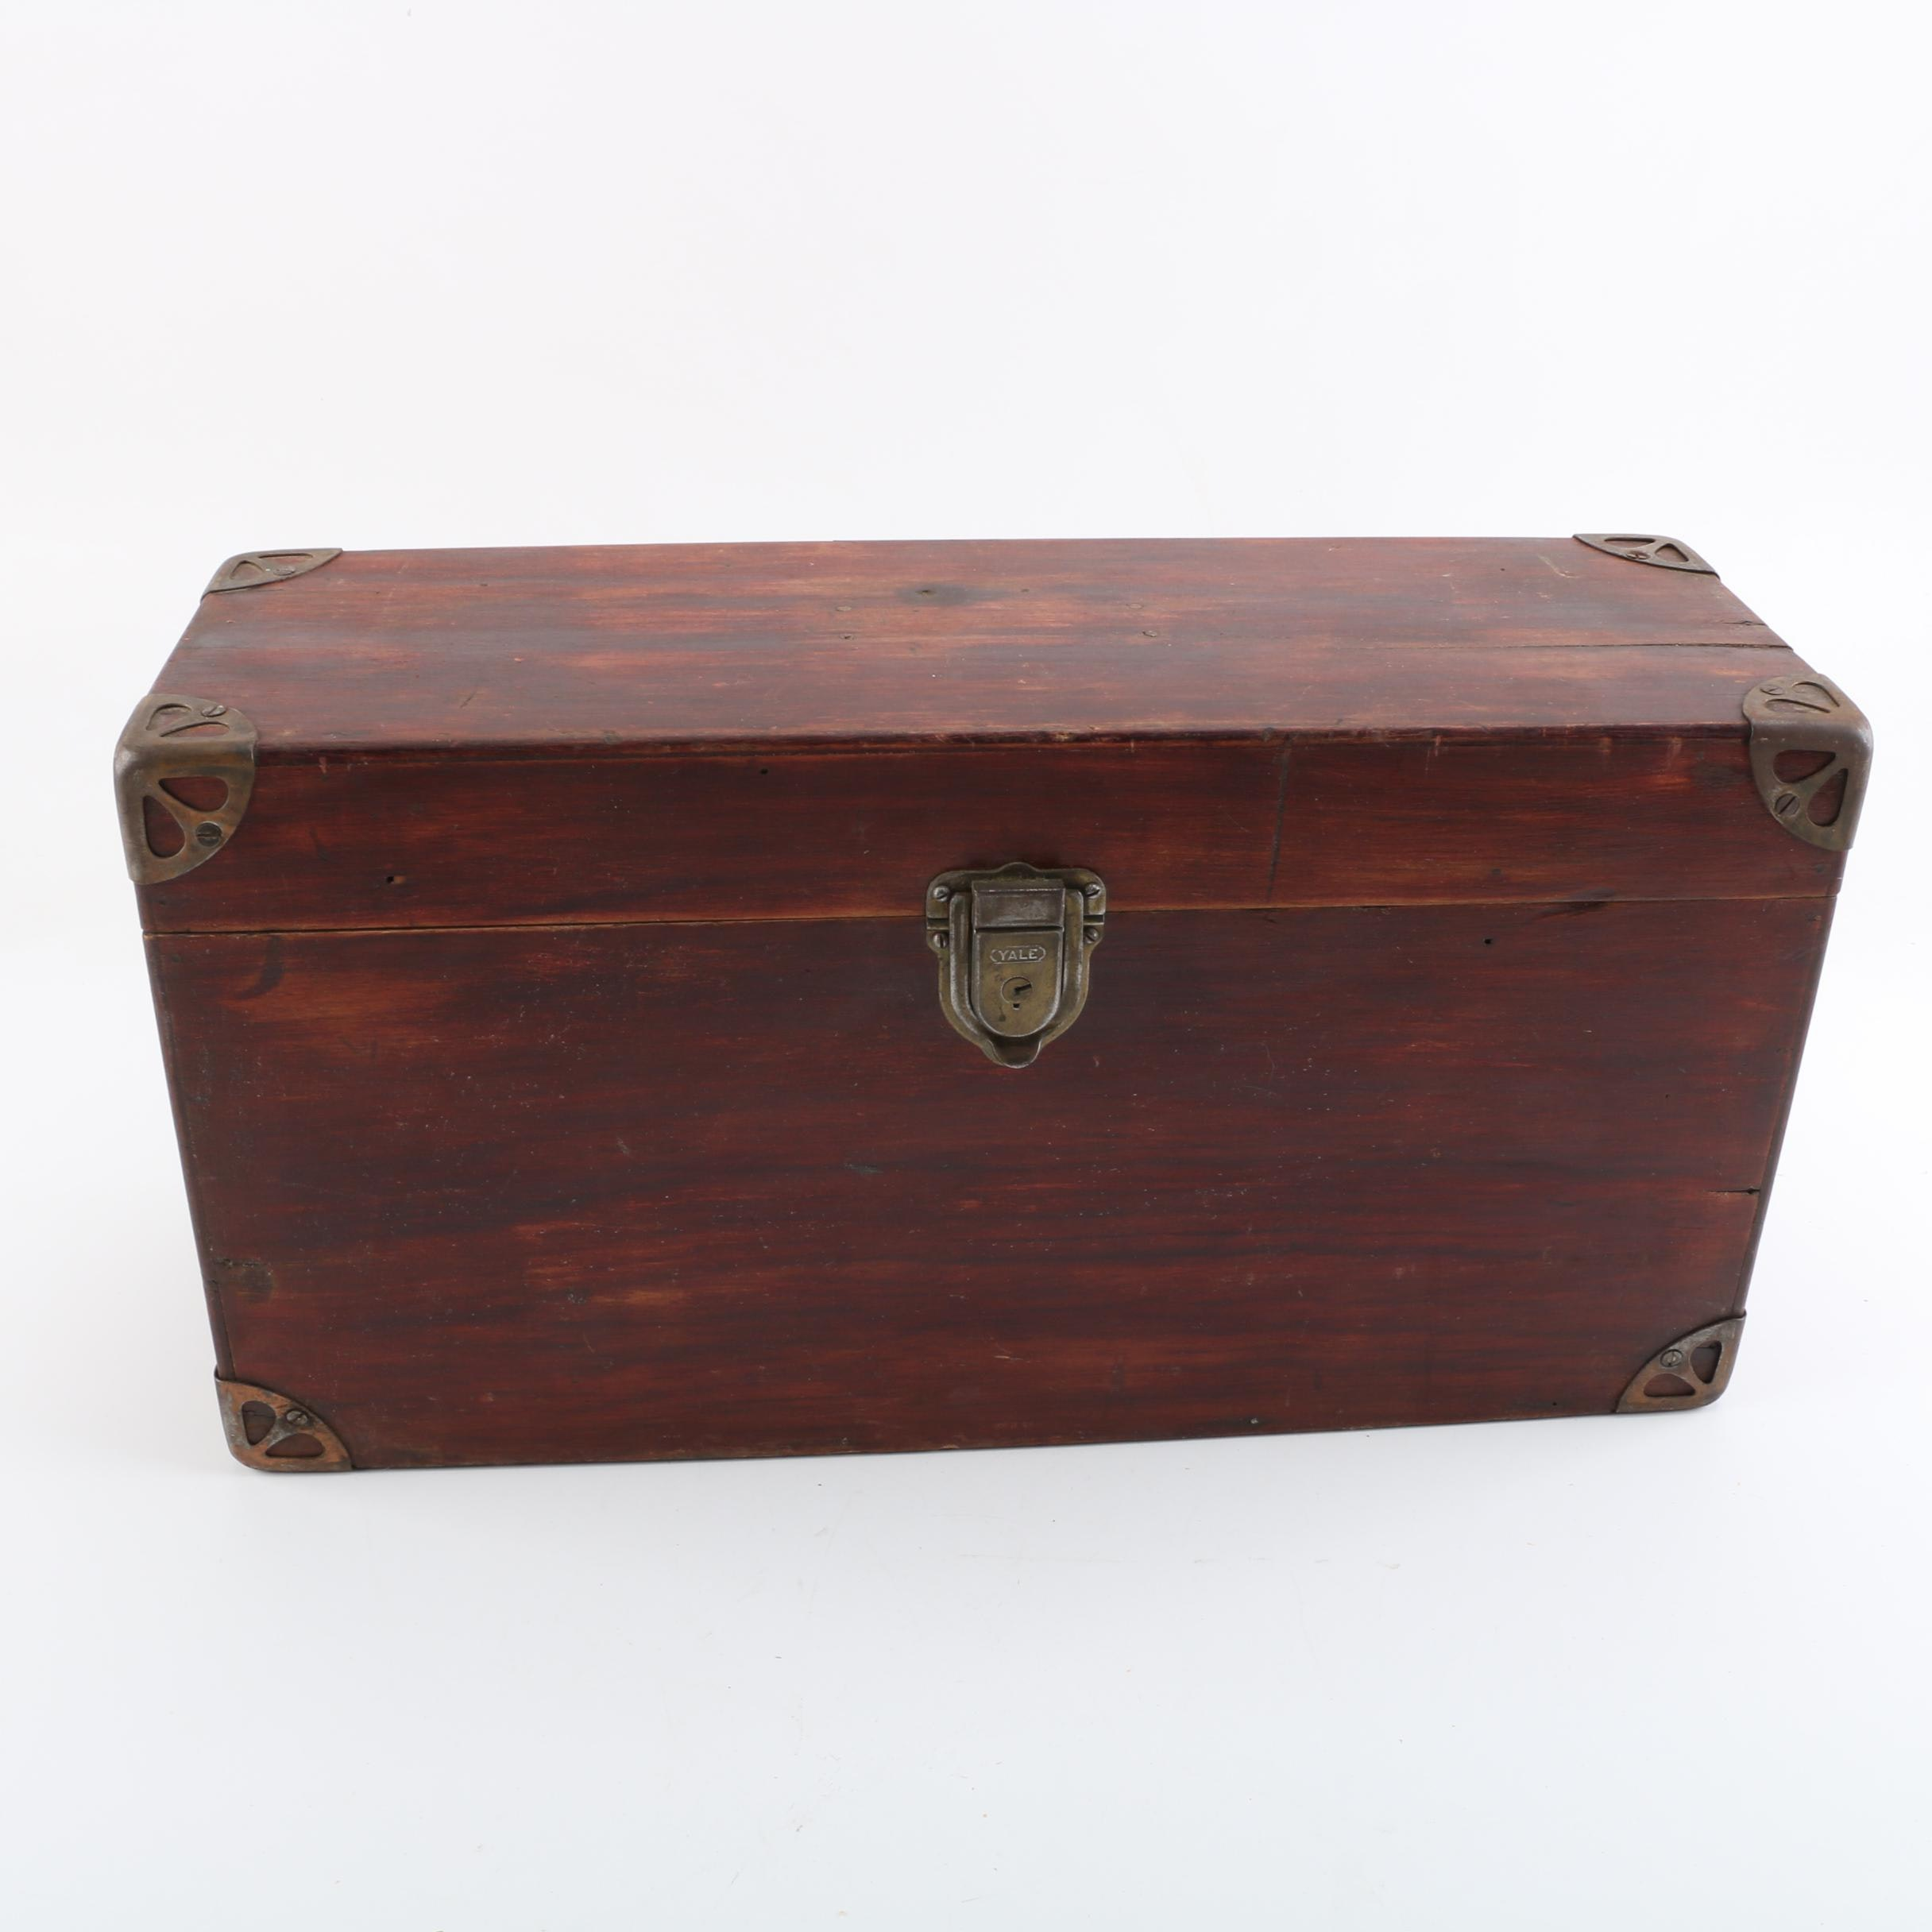 Vintage Steamer Trunk with Yale Lock